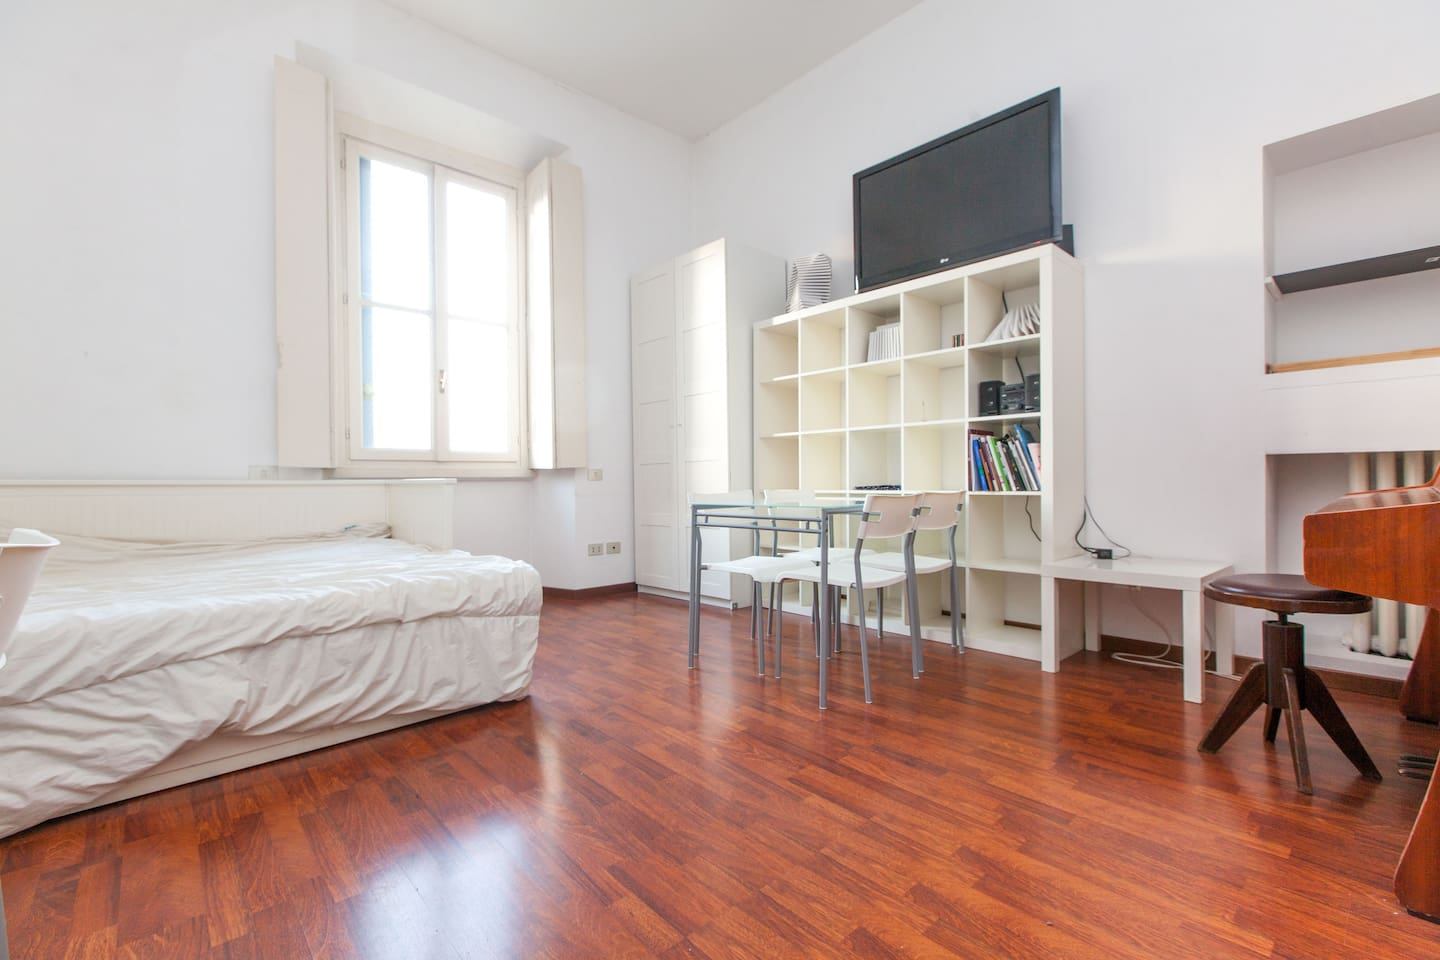 This is the studio. In one only room there is a lot for enjoying your stay in Milan, including a piano